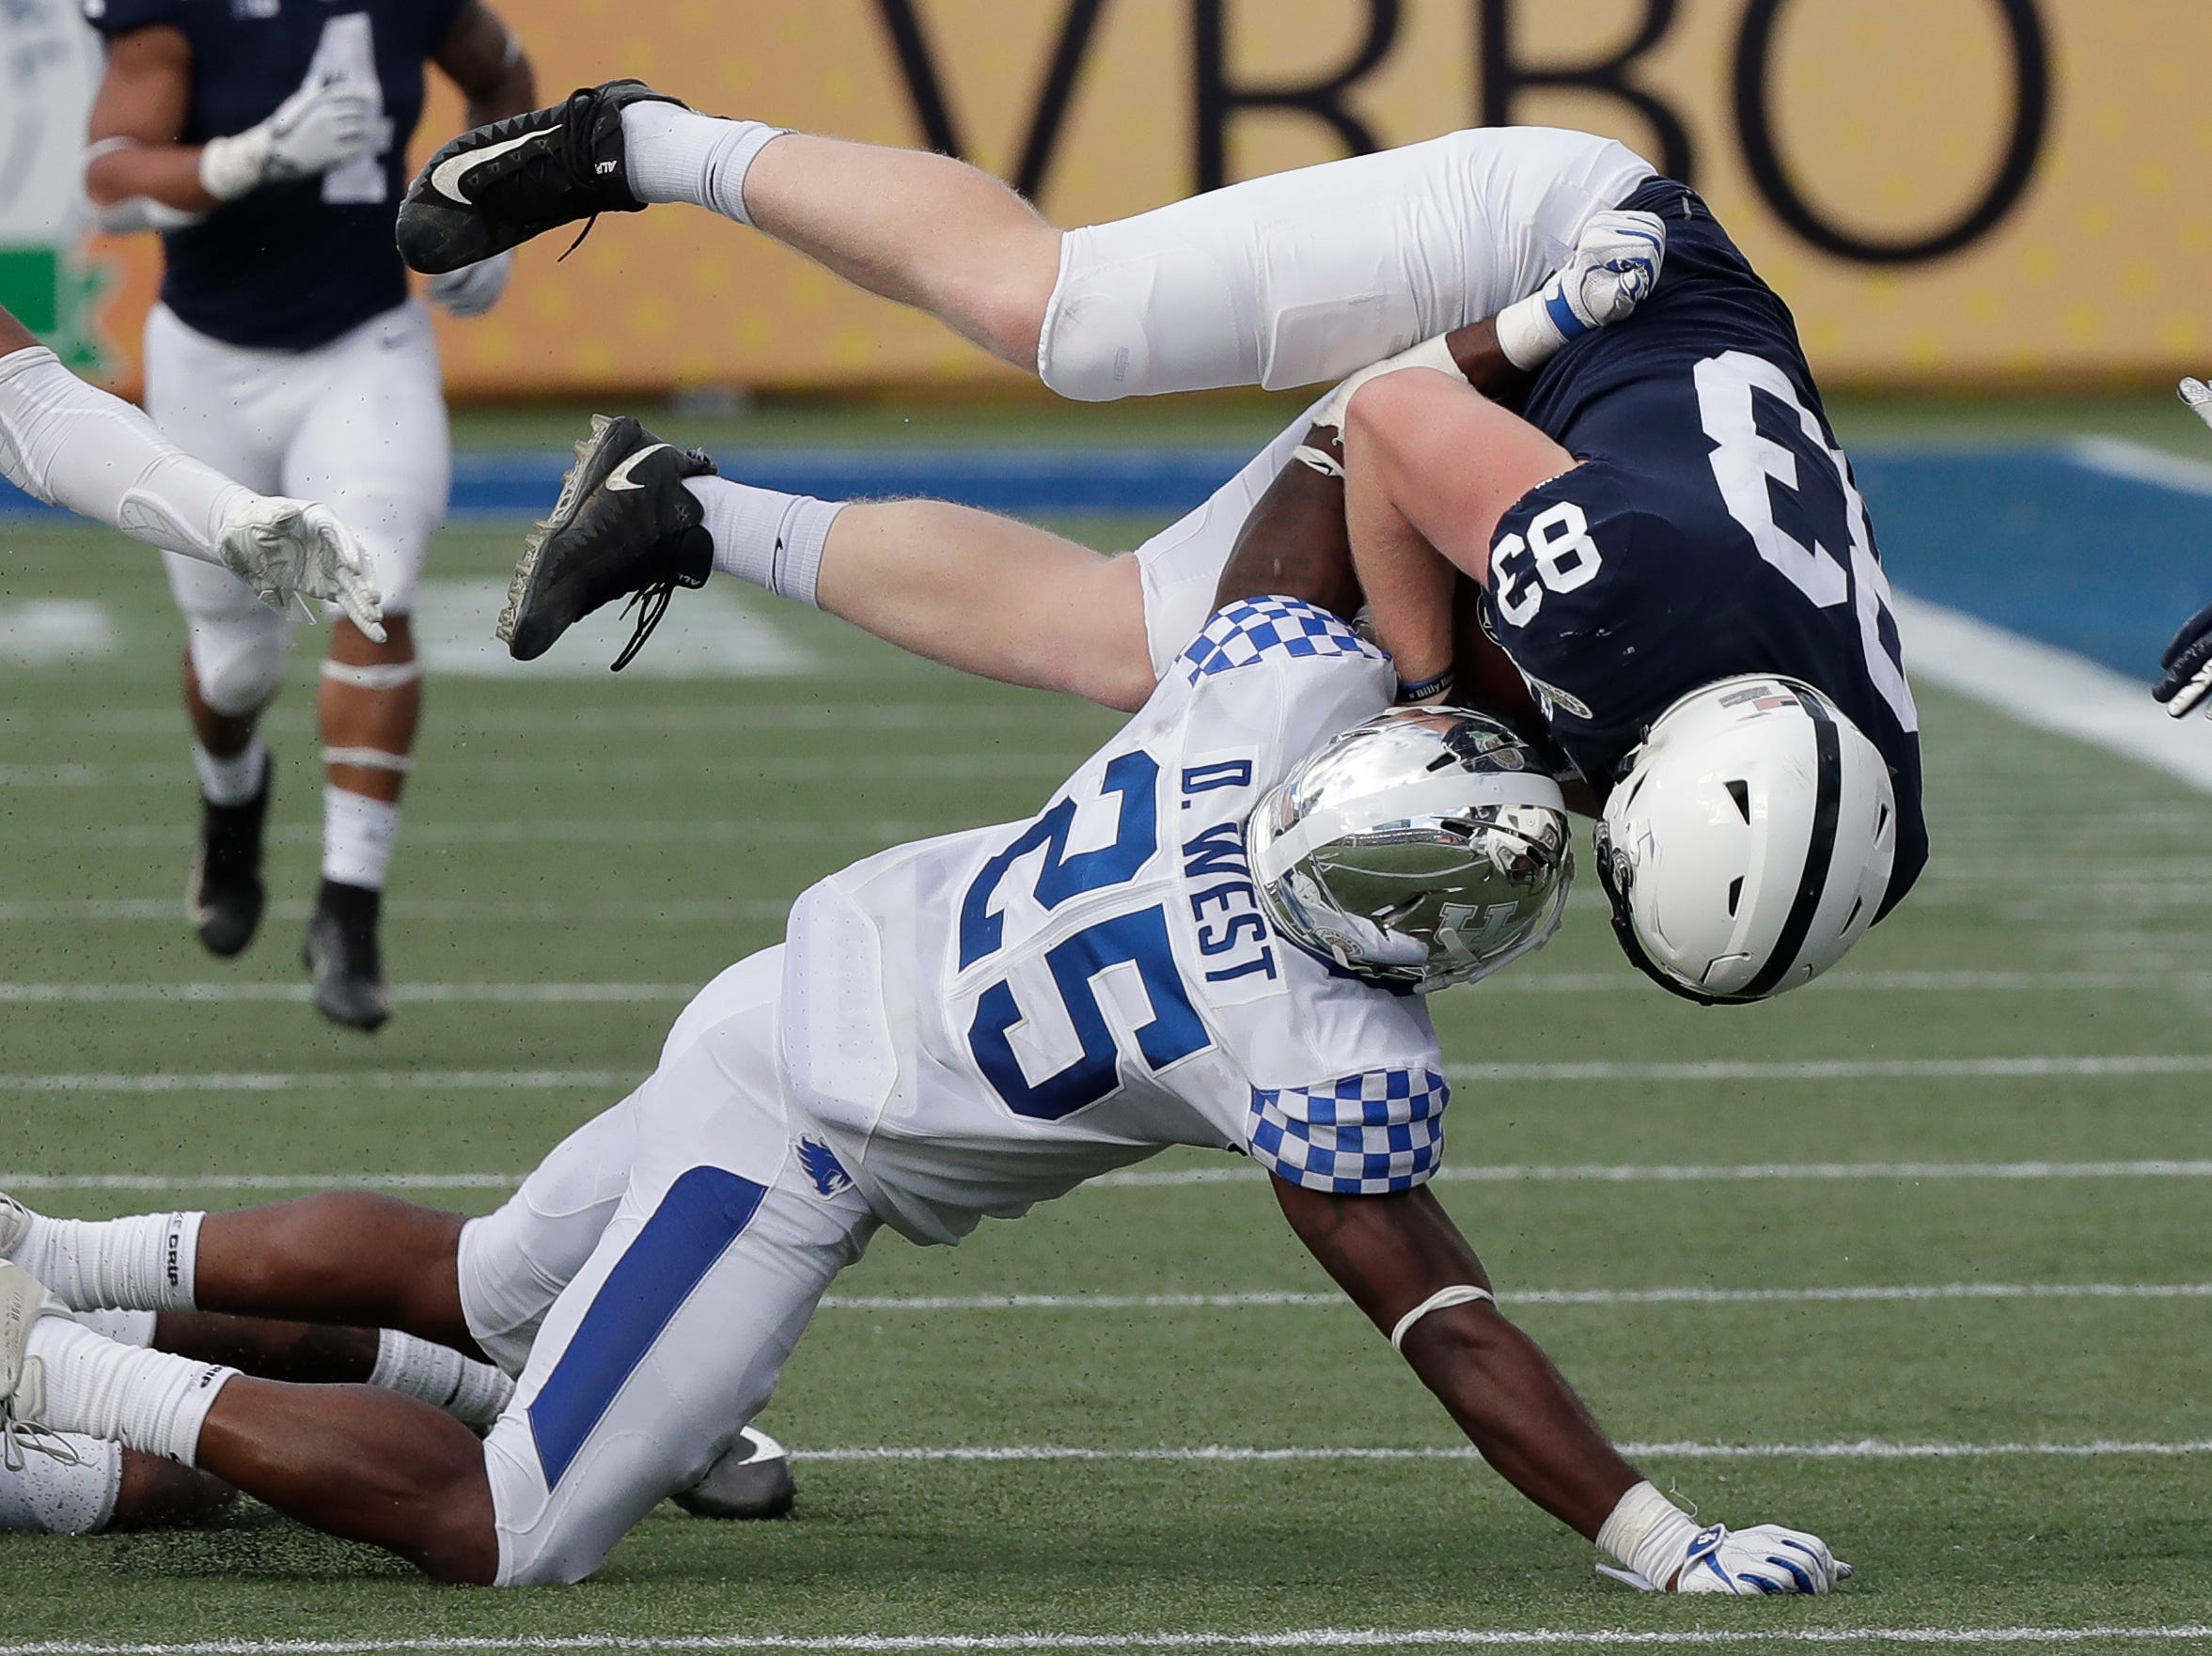 Penn State tight end Nick Bowers (83) is stopped after a reception by Kentucky safety Darius West (25) during the second half of the Citrus Bowl NCAA college football game, Tuesday, Jan. 1, 2019, in Orlando, Fla. (AP Photo/John Raoux)